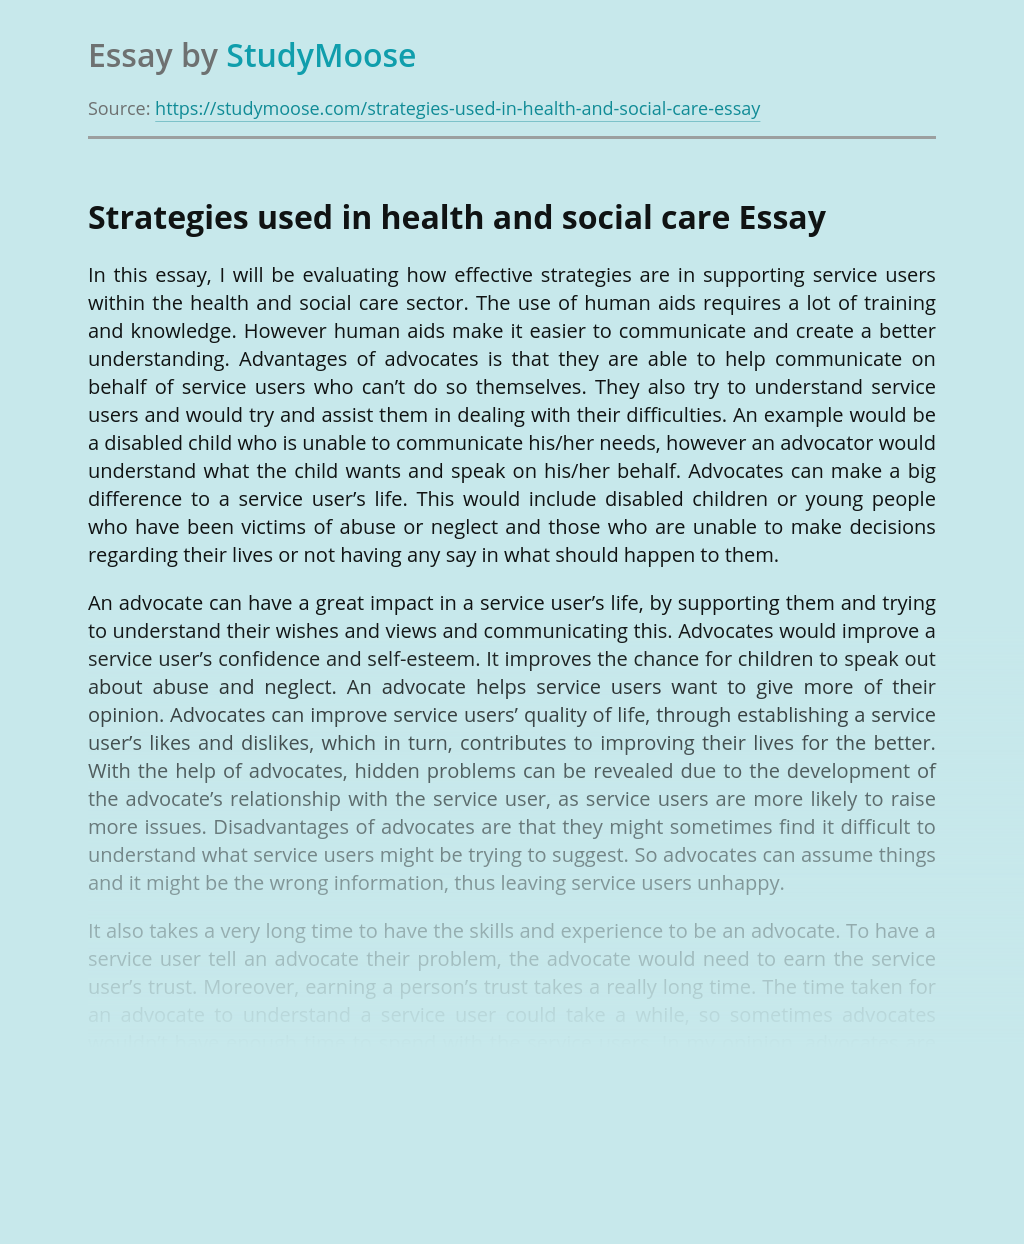 Strategies used in health and social care